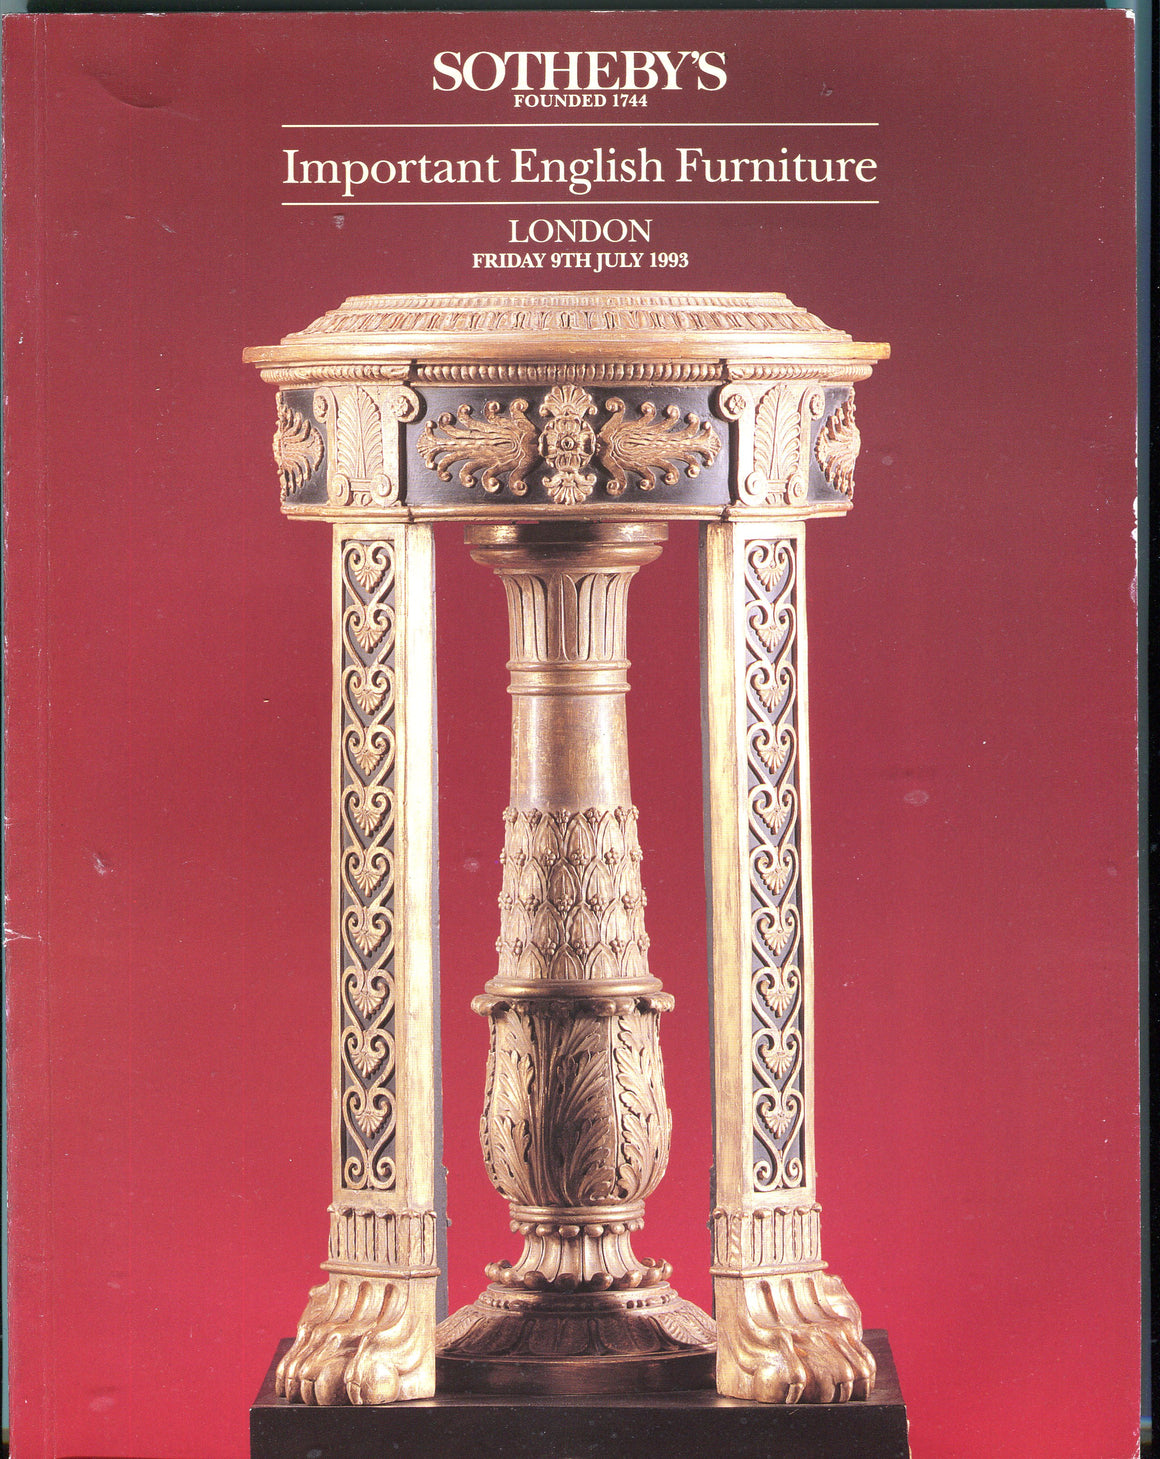 Sothebys Auction Catalog July 9 1993 Important English Furniture